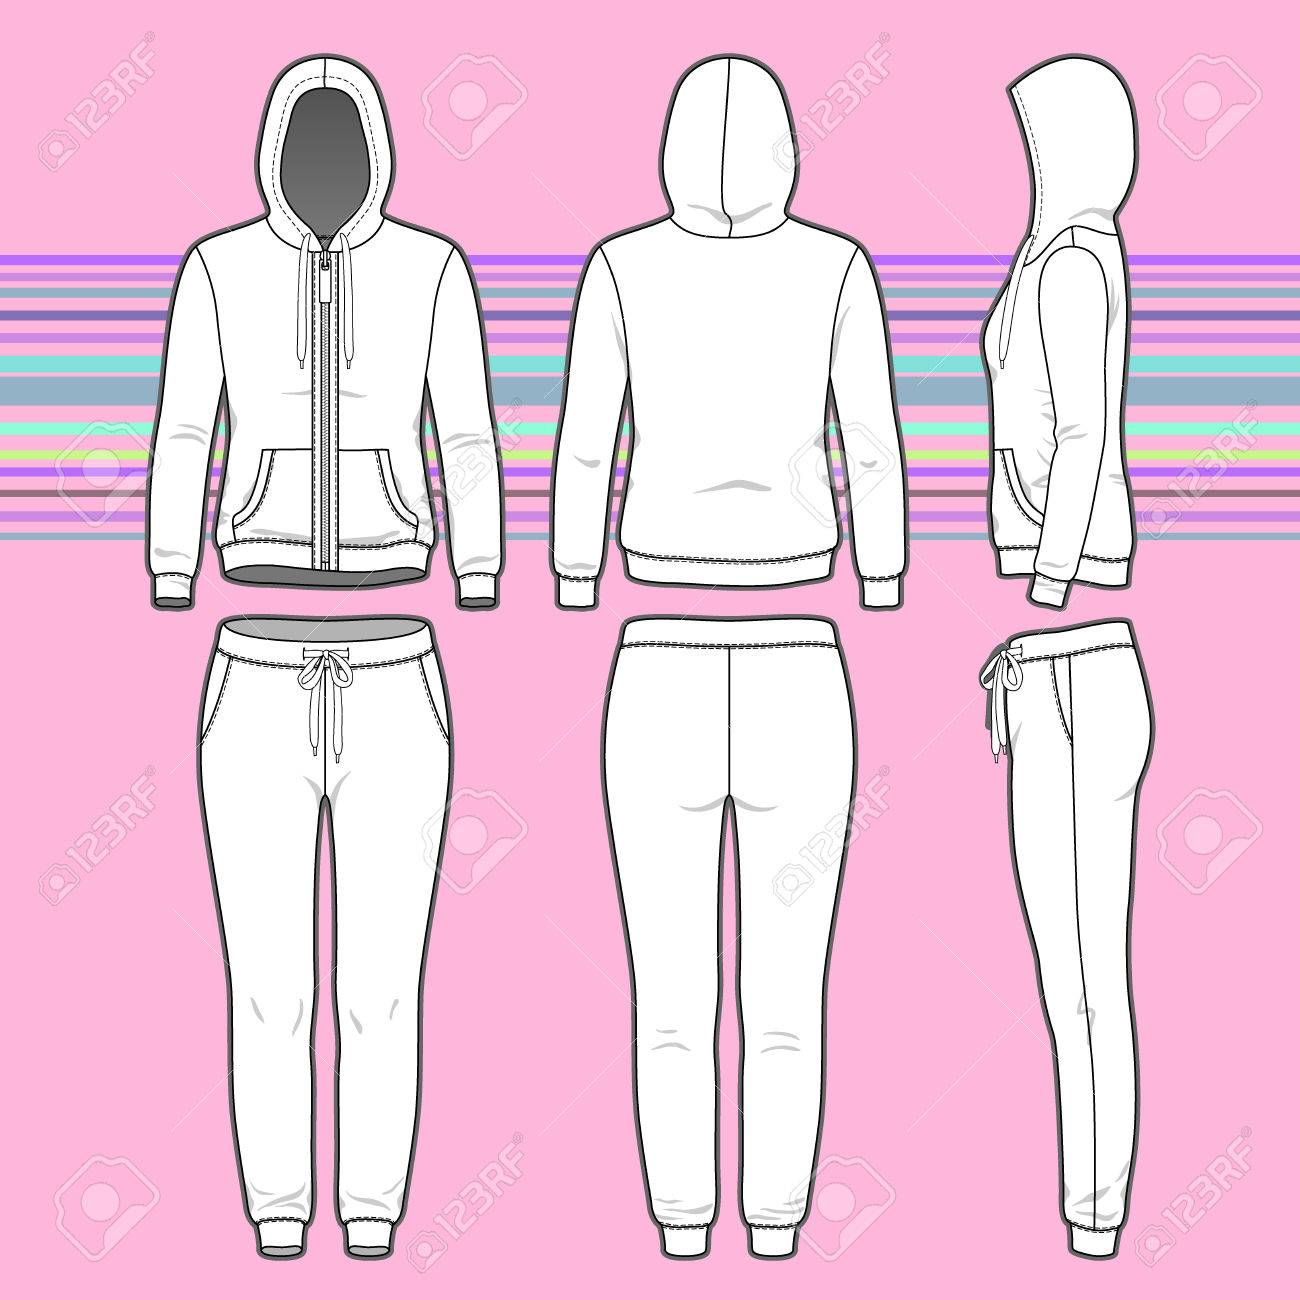 Front Back And Side Views Of Women S Clothing Set Blank Templates Royalty Free Cliparts Vectors And Stock Illustration Image 37244844